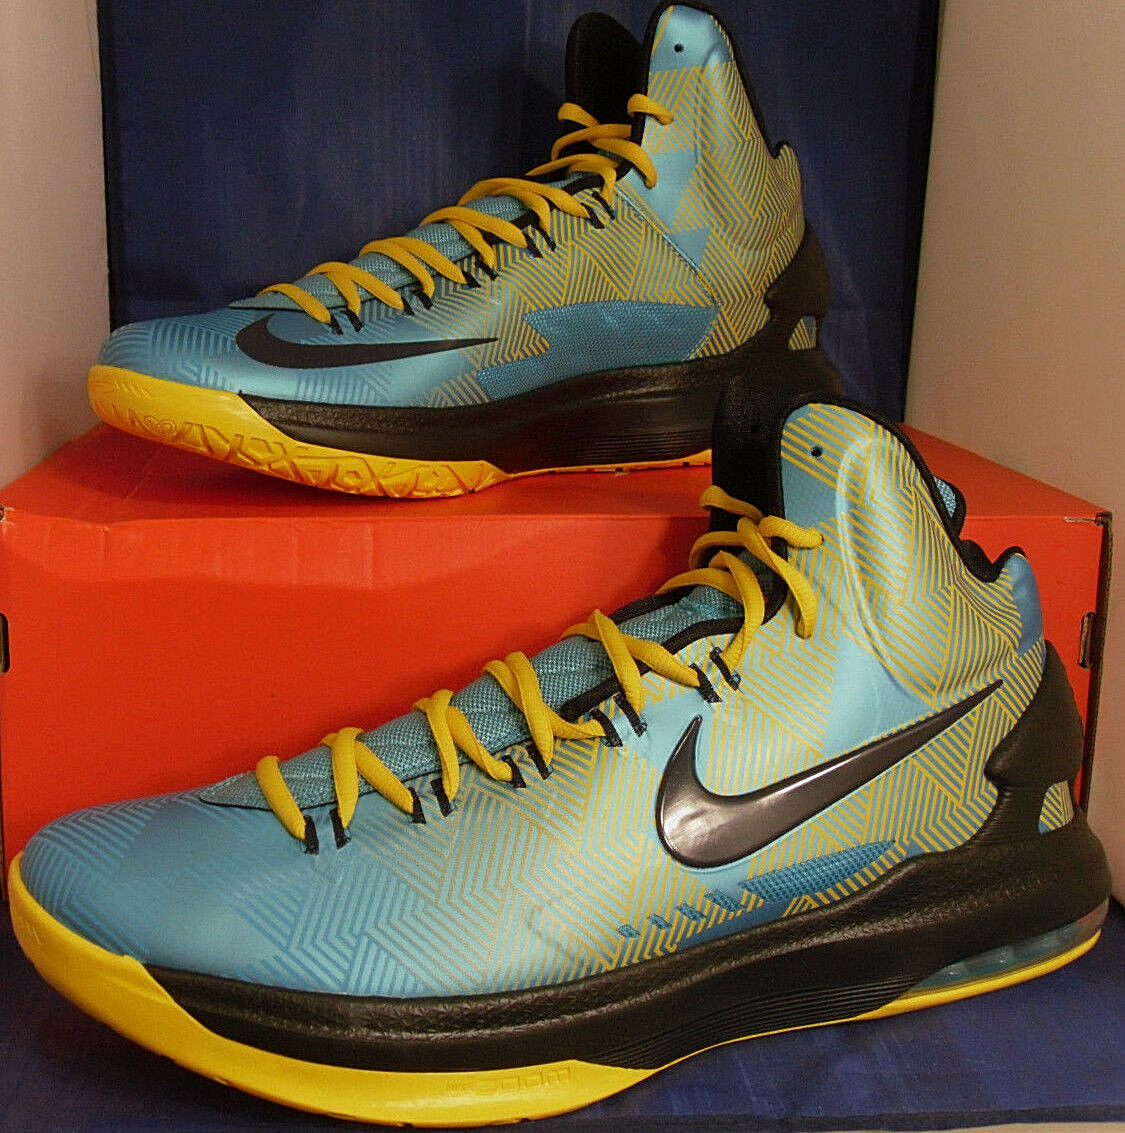 2018 Nike KD V 5 N7 Golden State Warriors Kevin Durant Price reduction Cheap and beautiful fashion